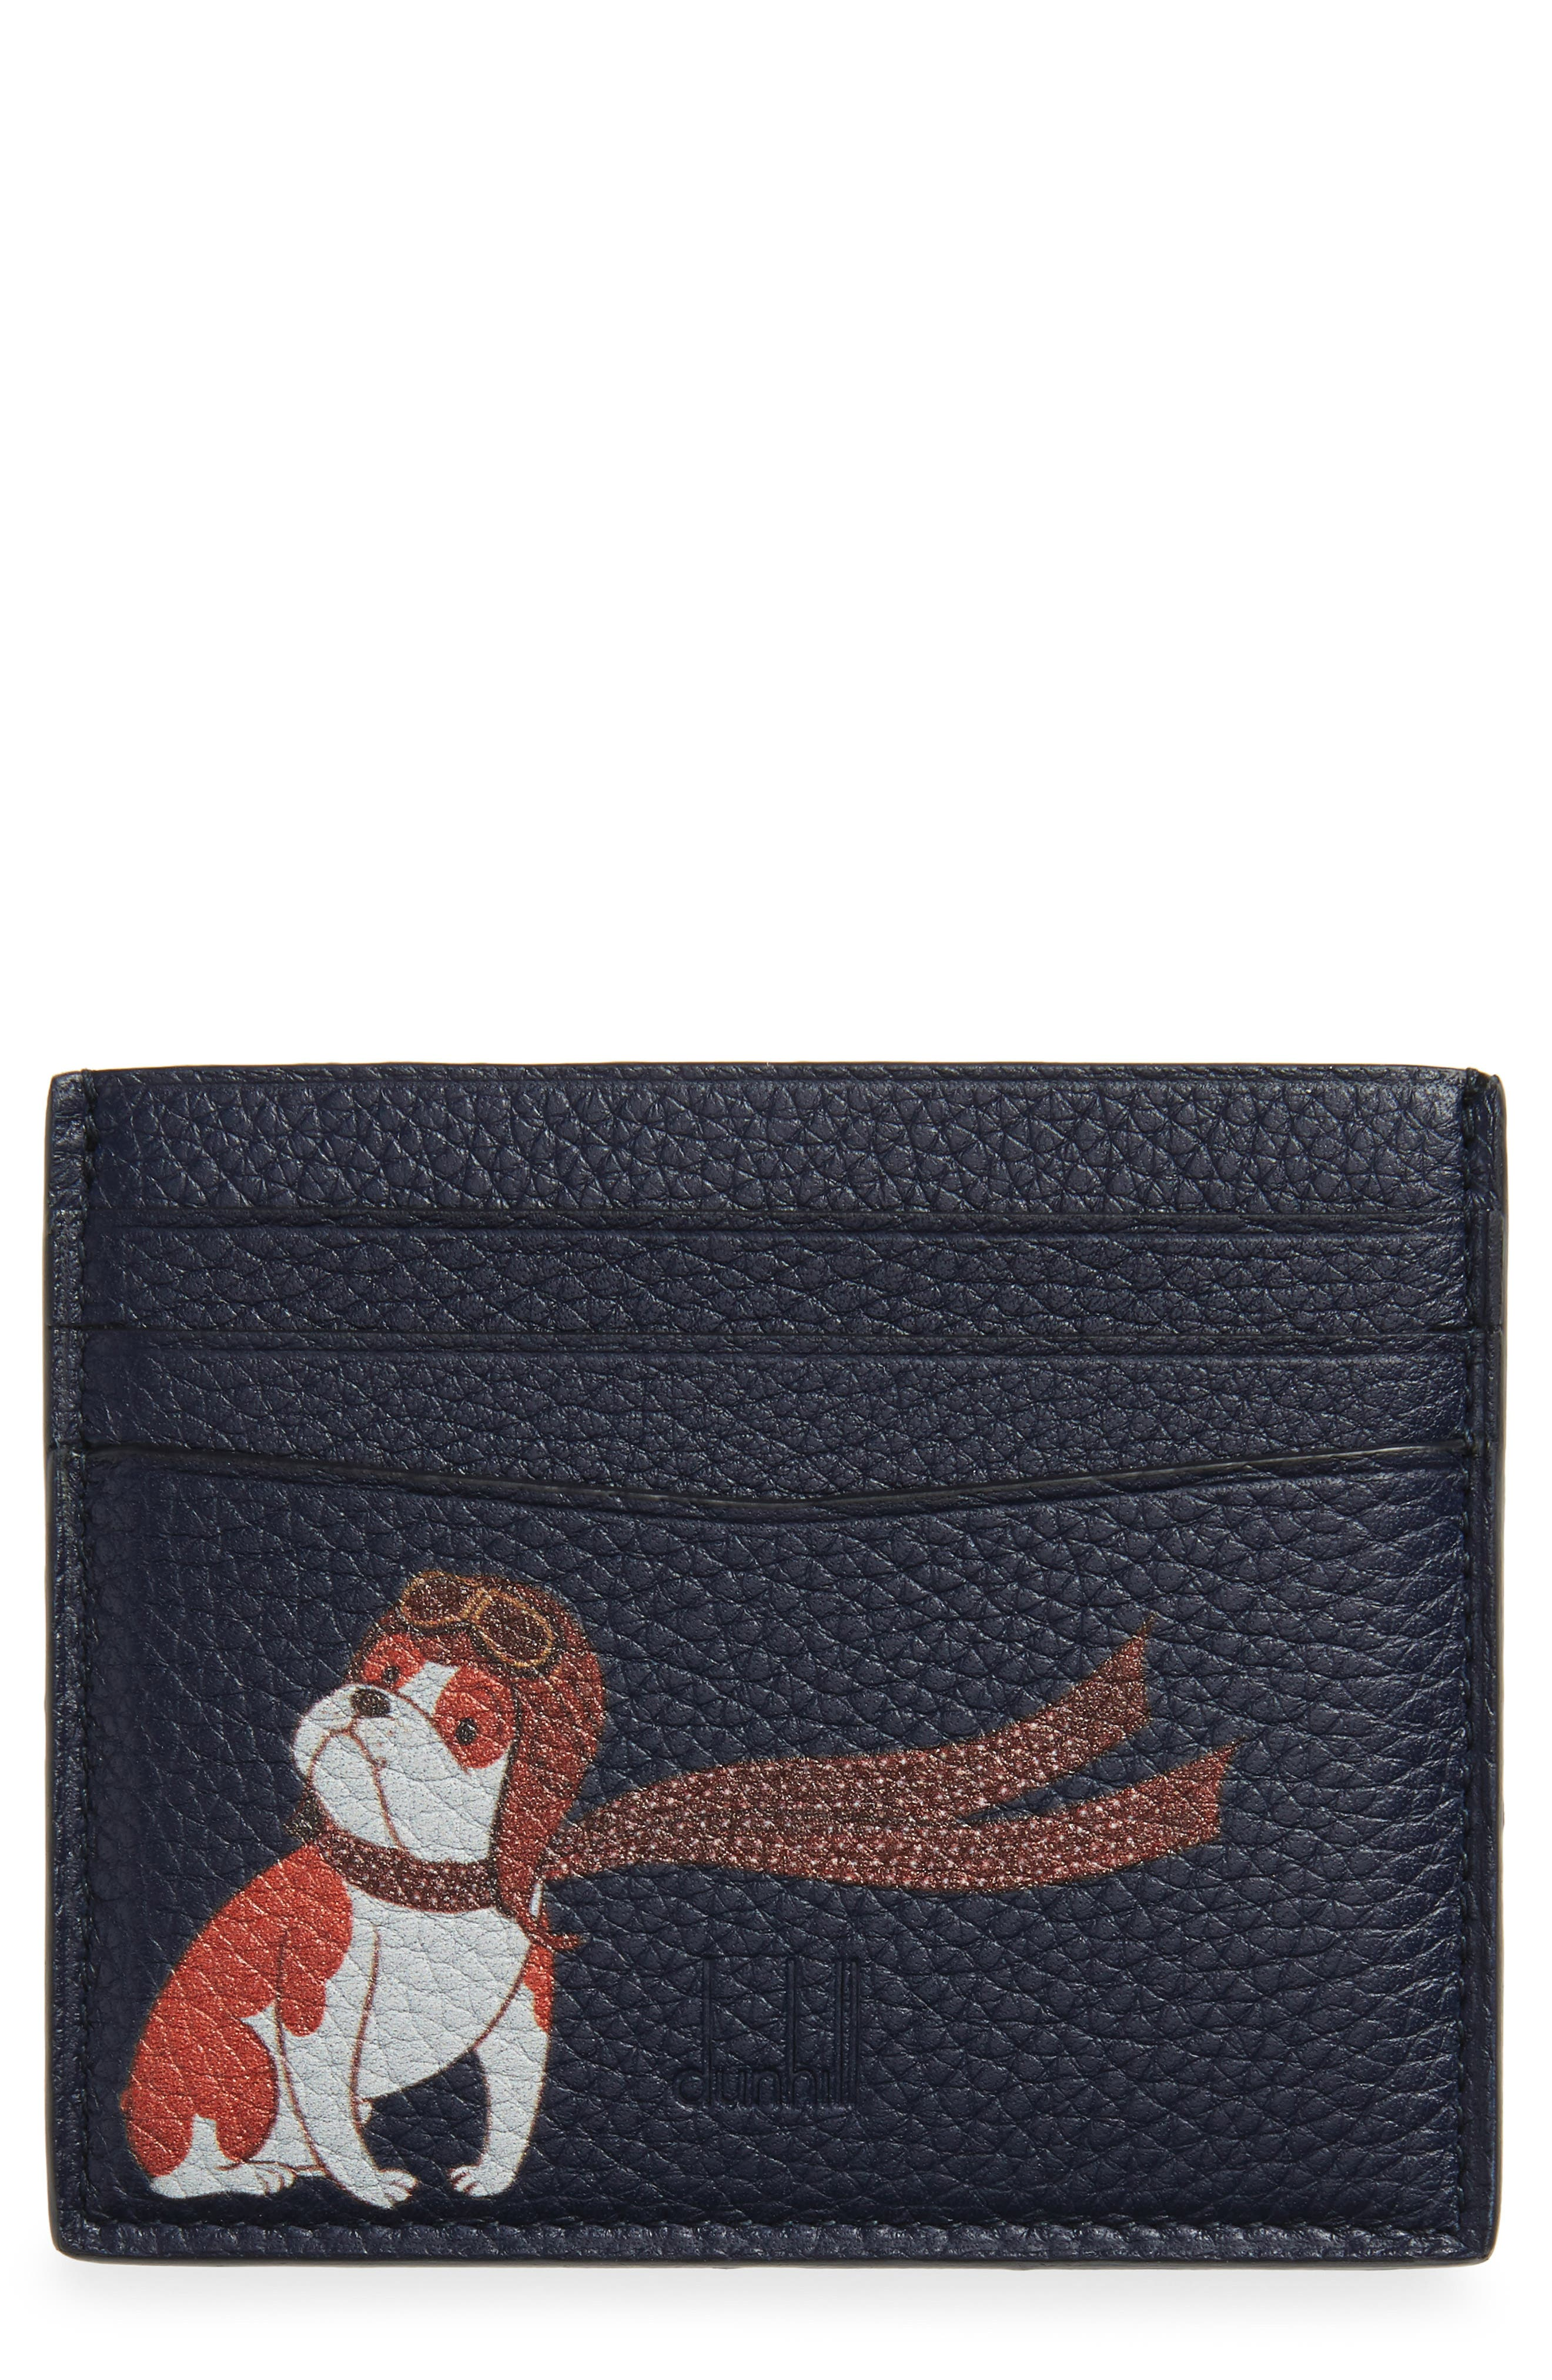 Boston Bulldog Leather Card Case, Main, color, 400